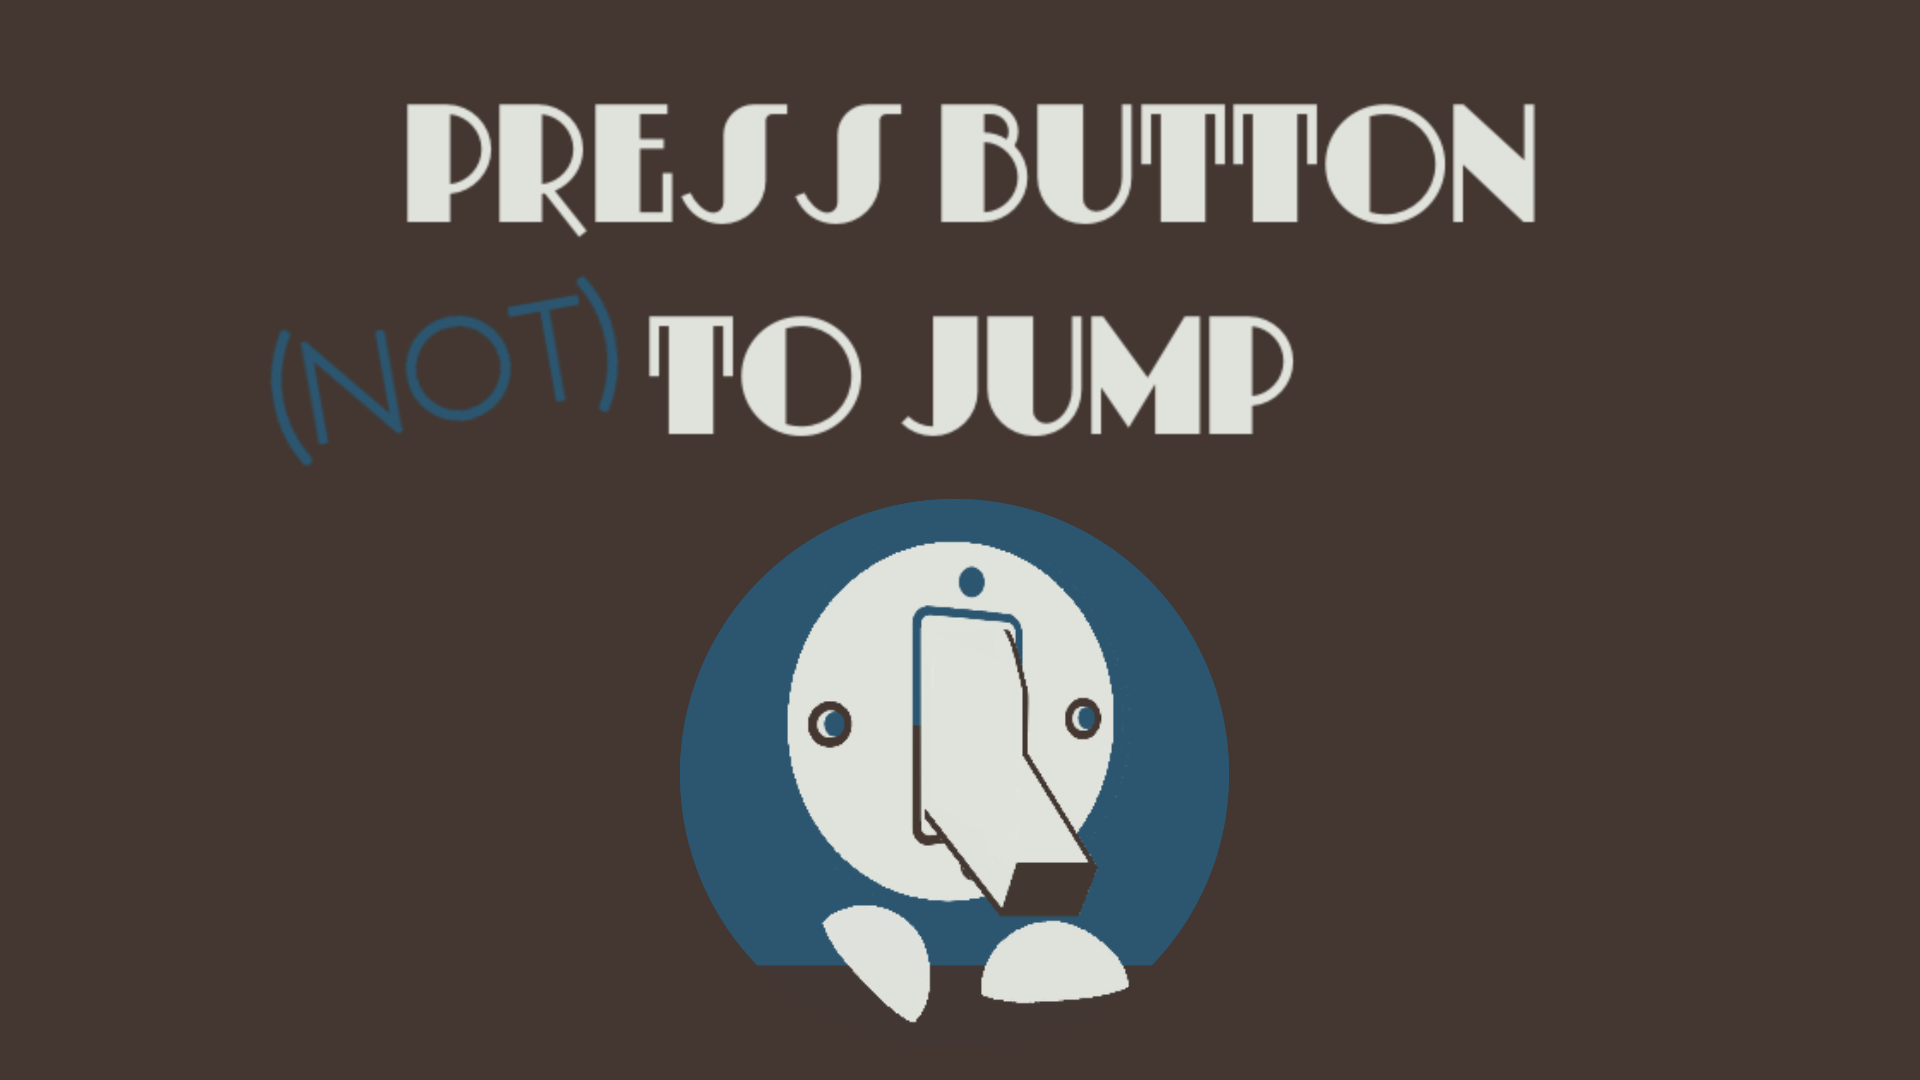 Press Button (Not) to Jump